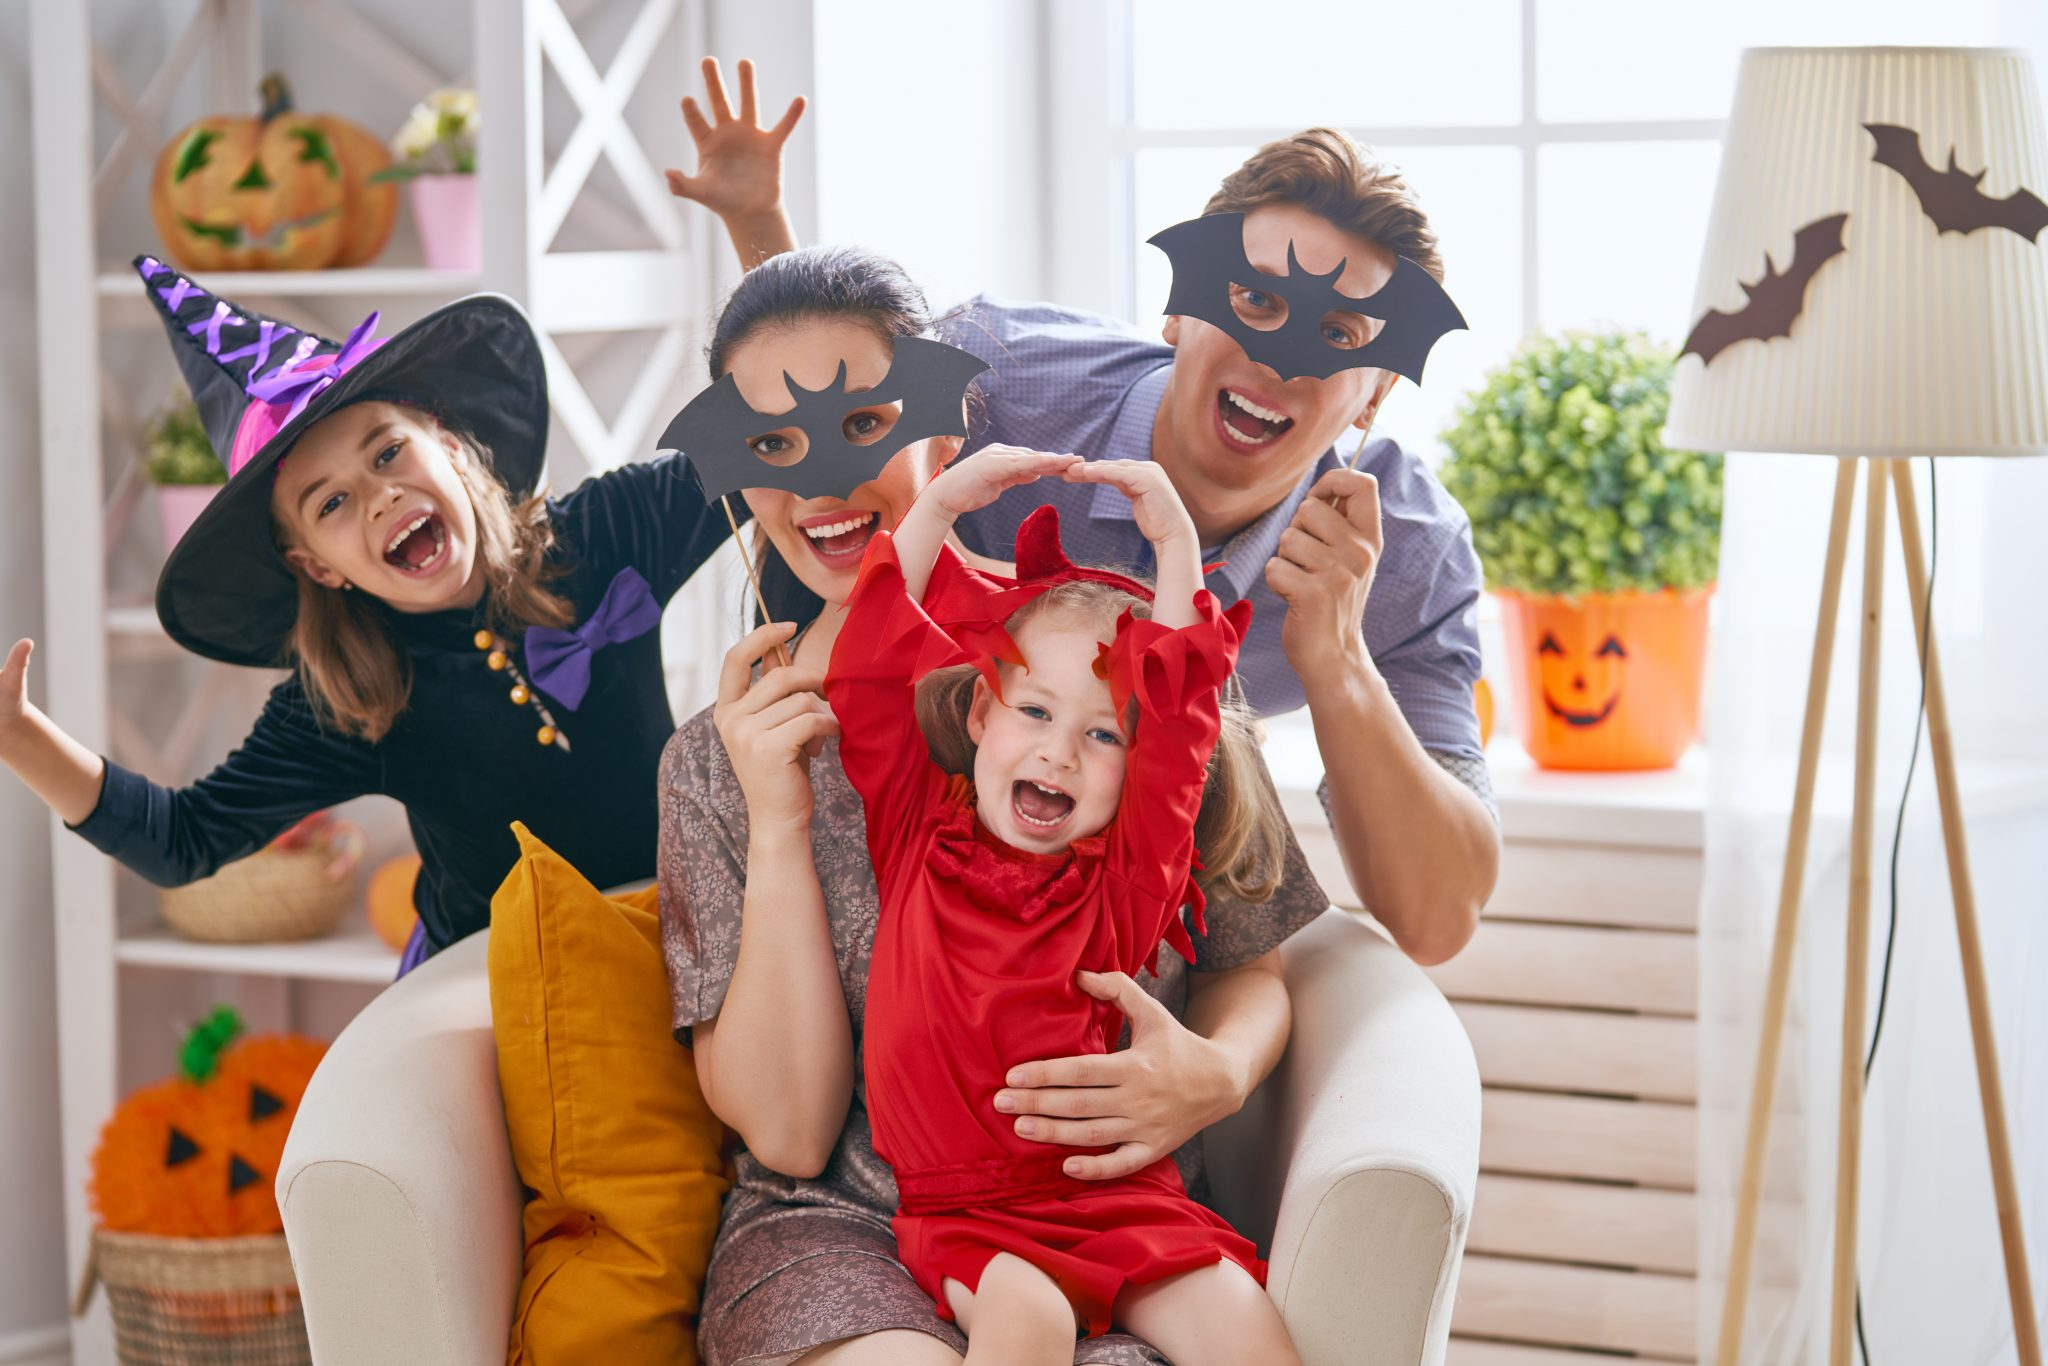 Aqua Springs dental in san marcos texas Avoid Candy Overload this Halloween It's that time of year again! Time to take the kids to a fall festival or even go door to door trick or treating around the neighborhood. Every year it's the one night that children get to dress as their favorite superhero, princess, or other character and have a ton of fun doing it. In other words, Halloween is a fun night for all. However, as a parent concerned about your child's dental health, you know that all of that fun (and the pile of candy that goes along with it) can be detrimental to your child's oral health. family celebrating Halloween